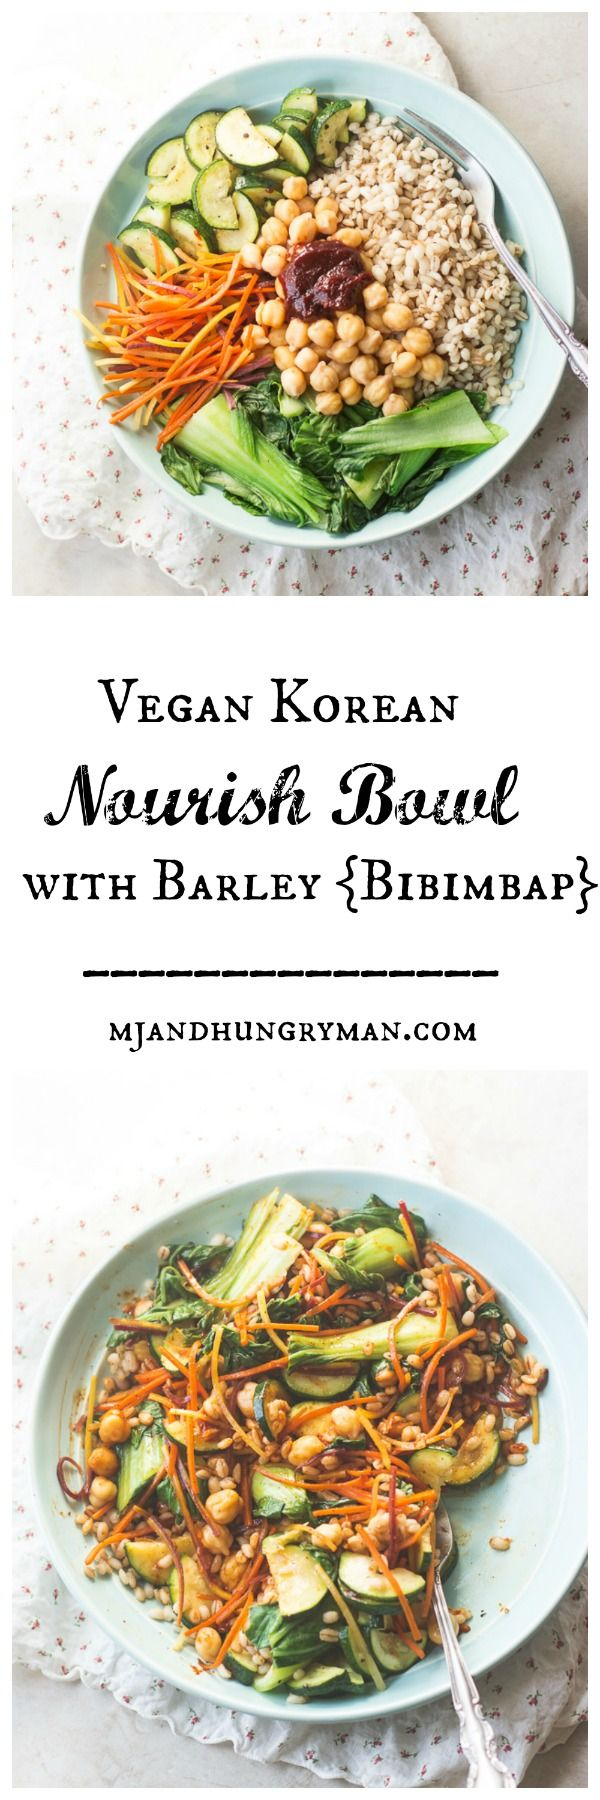 Vegan Korean Nourish Bowl with Barley {Bibimbap} @mjandhungryman - make sure your kimchi is vegan if you choose to use!